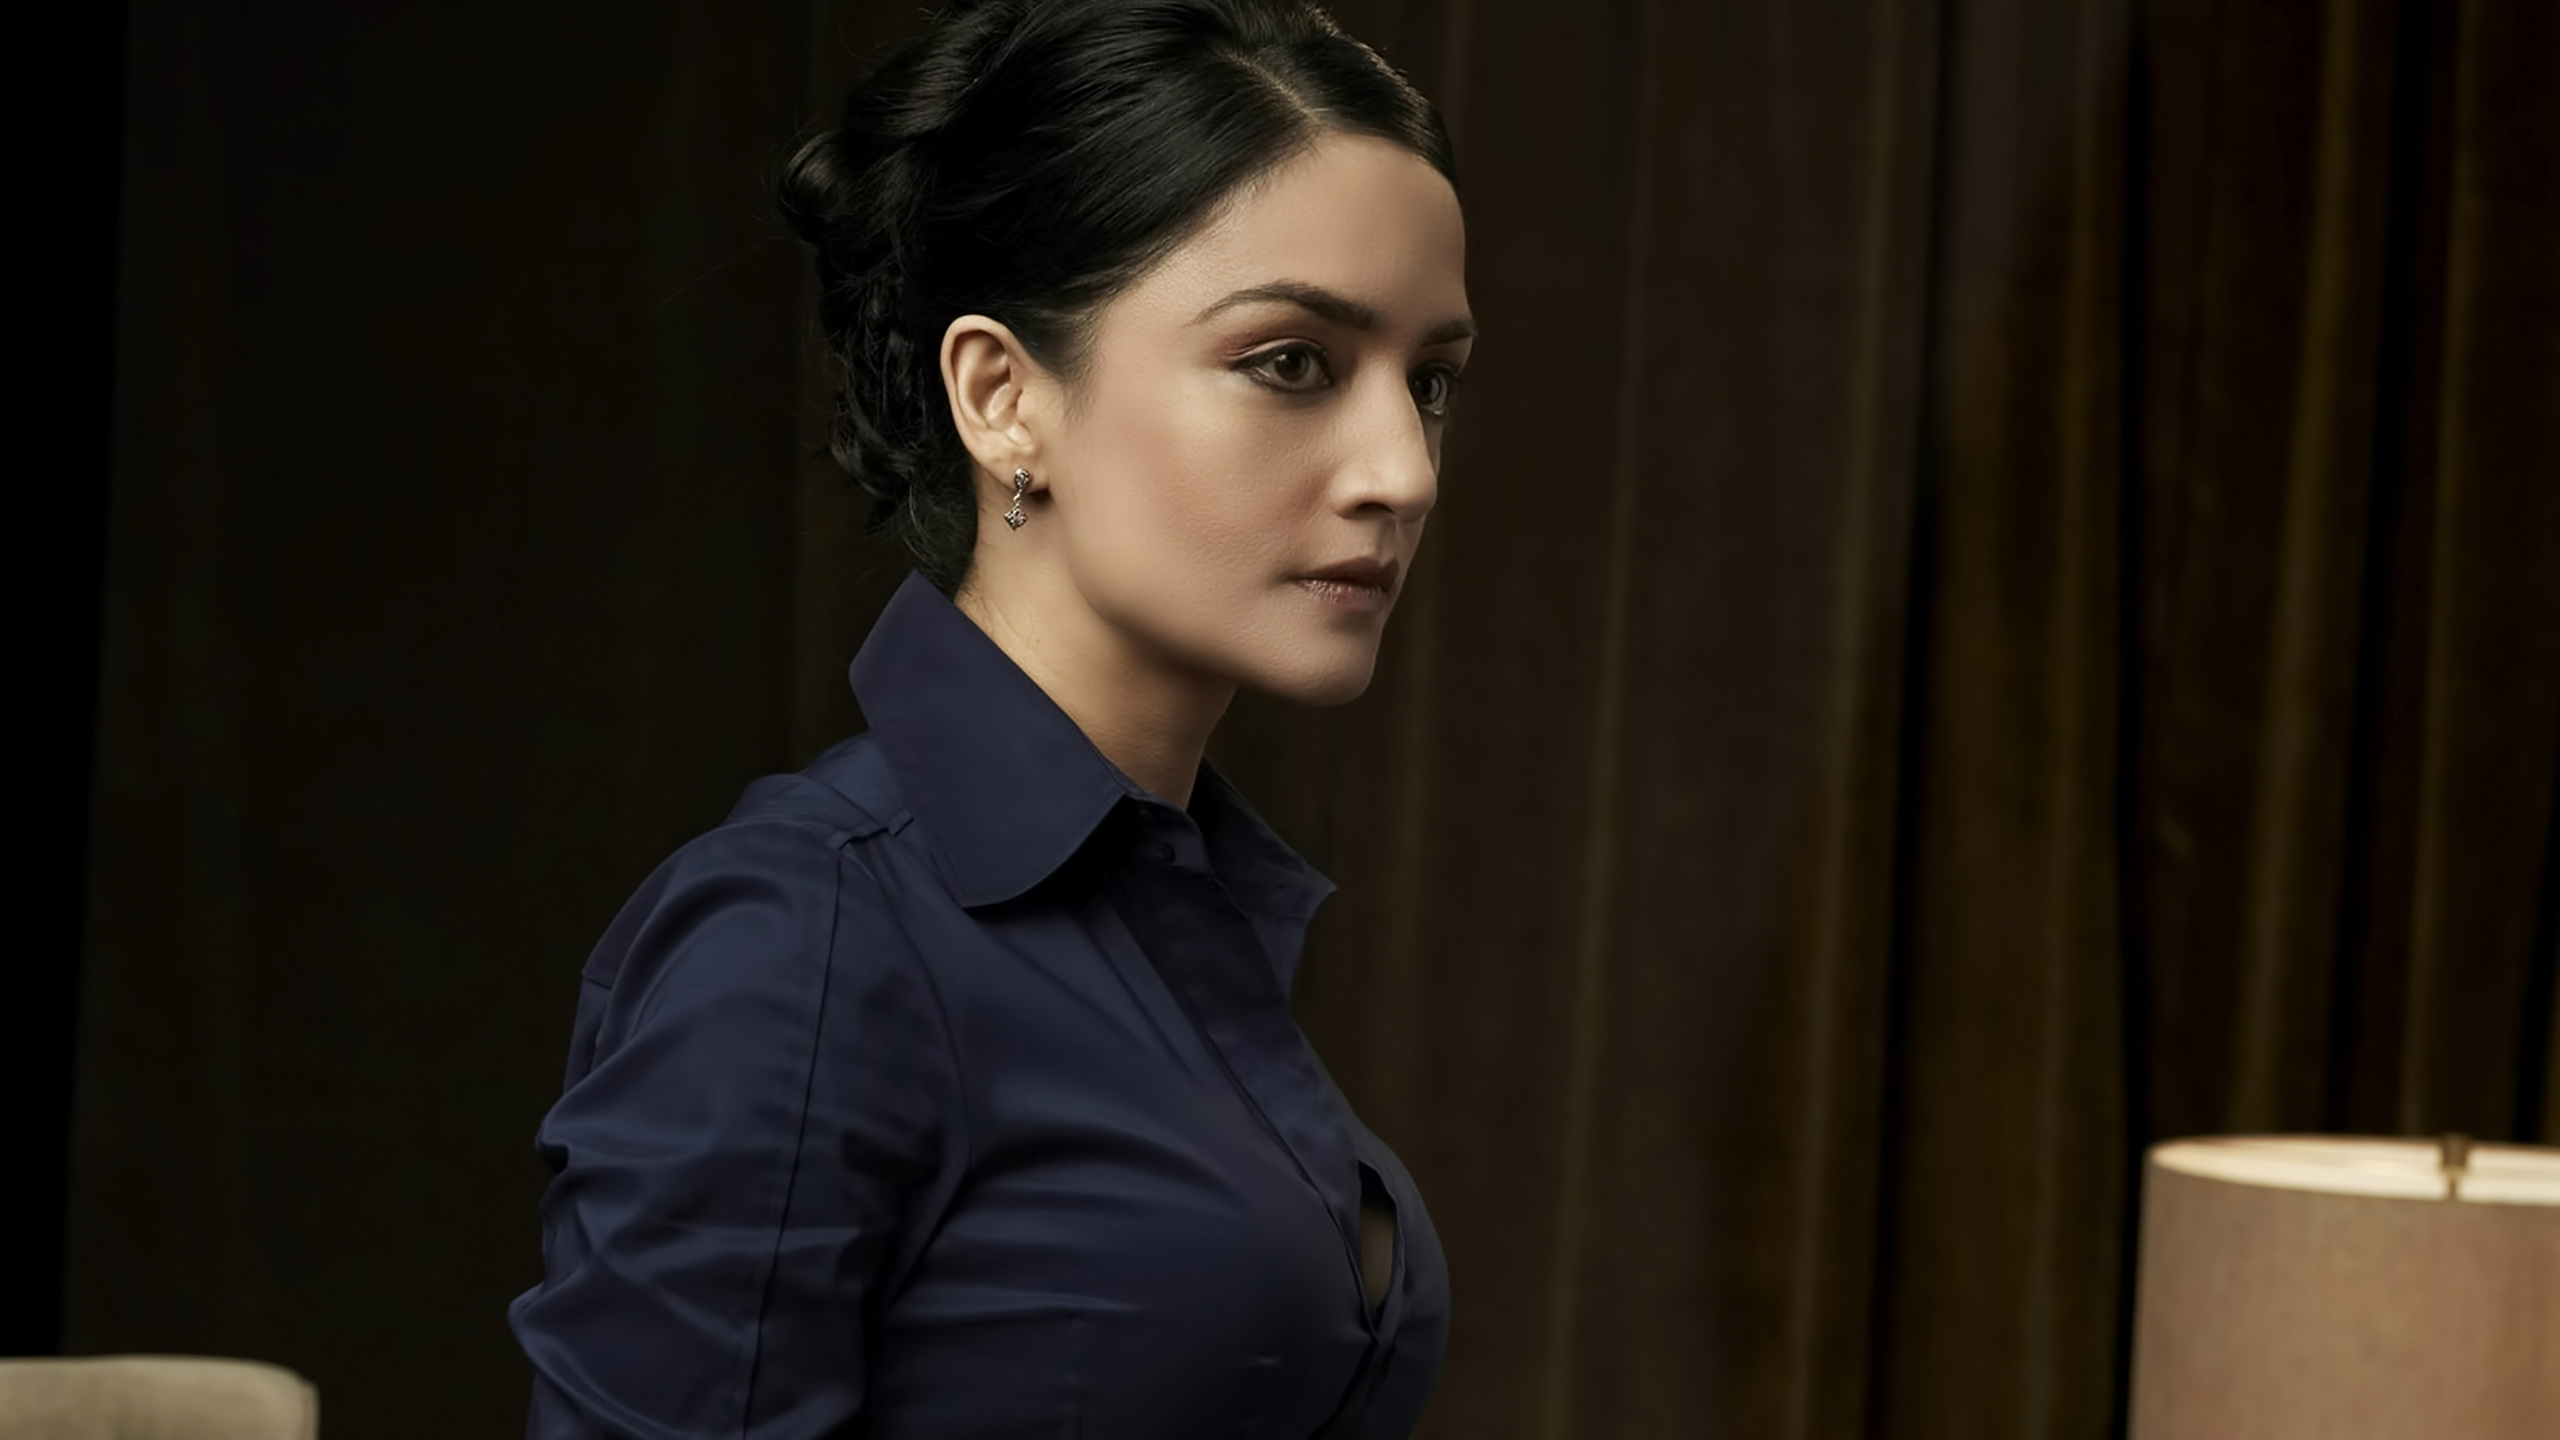 archie panjabi 4k widescreen desktop wallpaper 1130